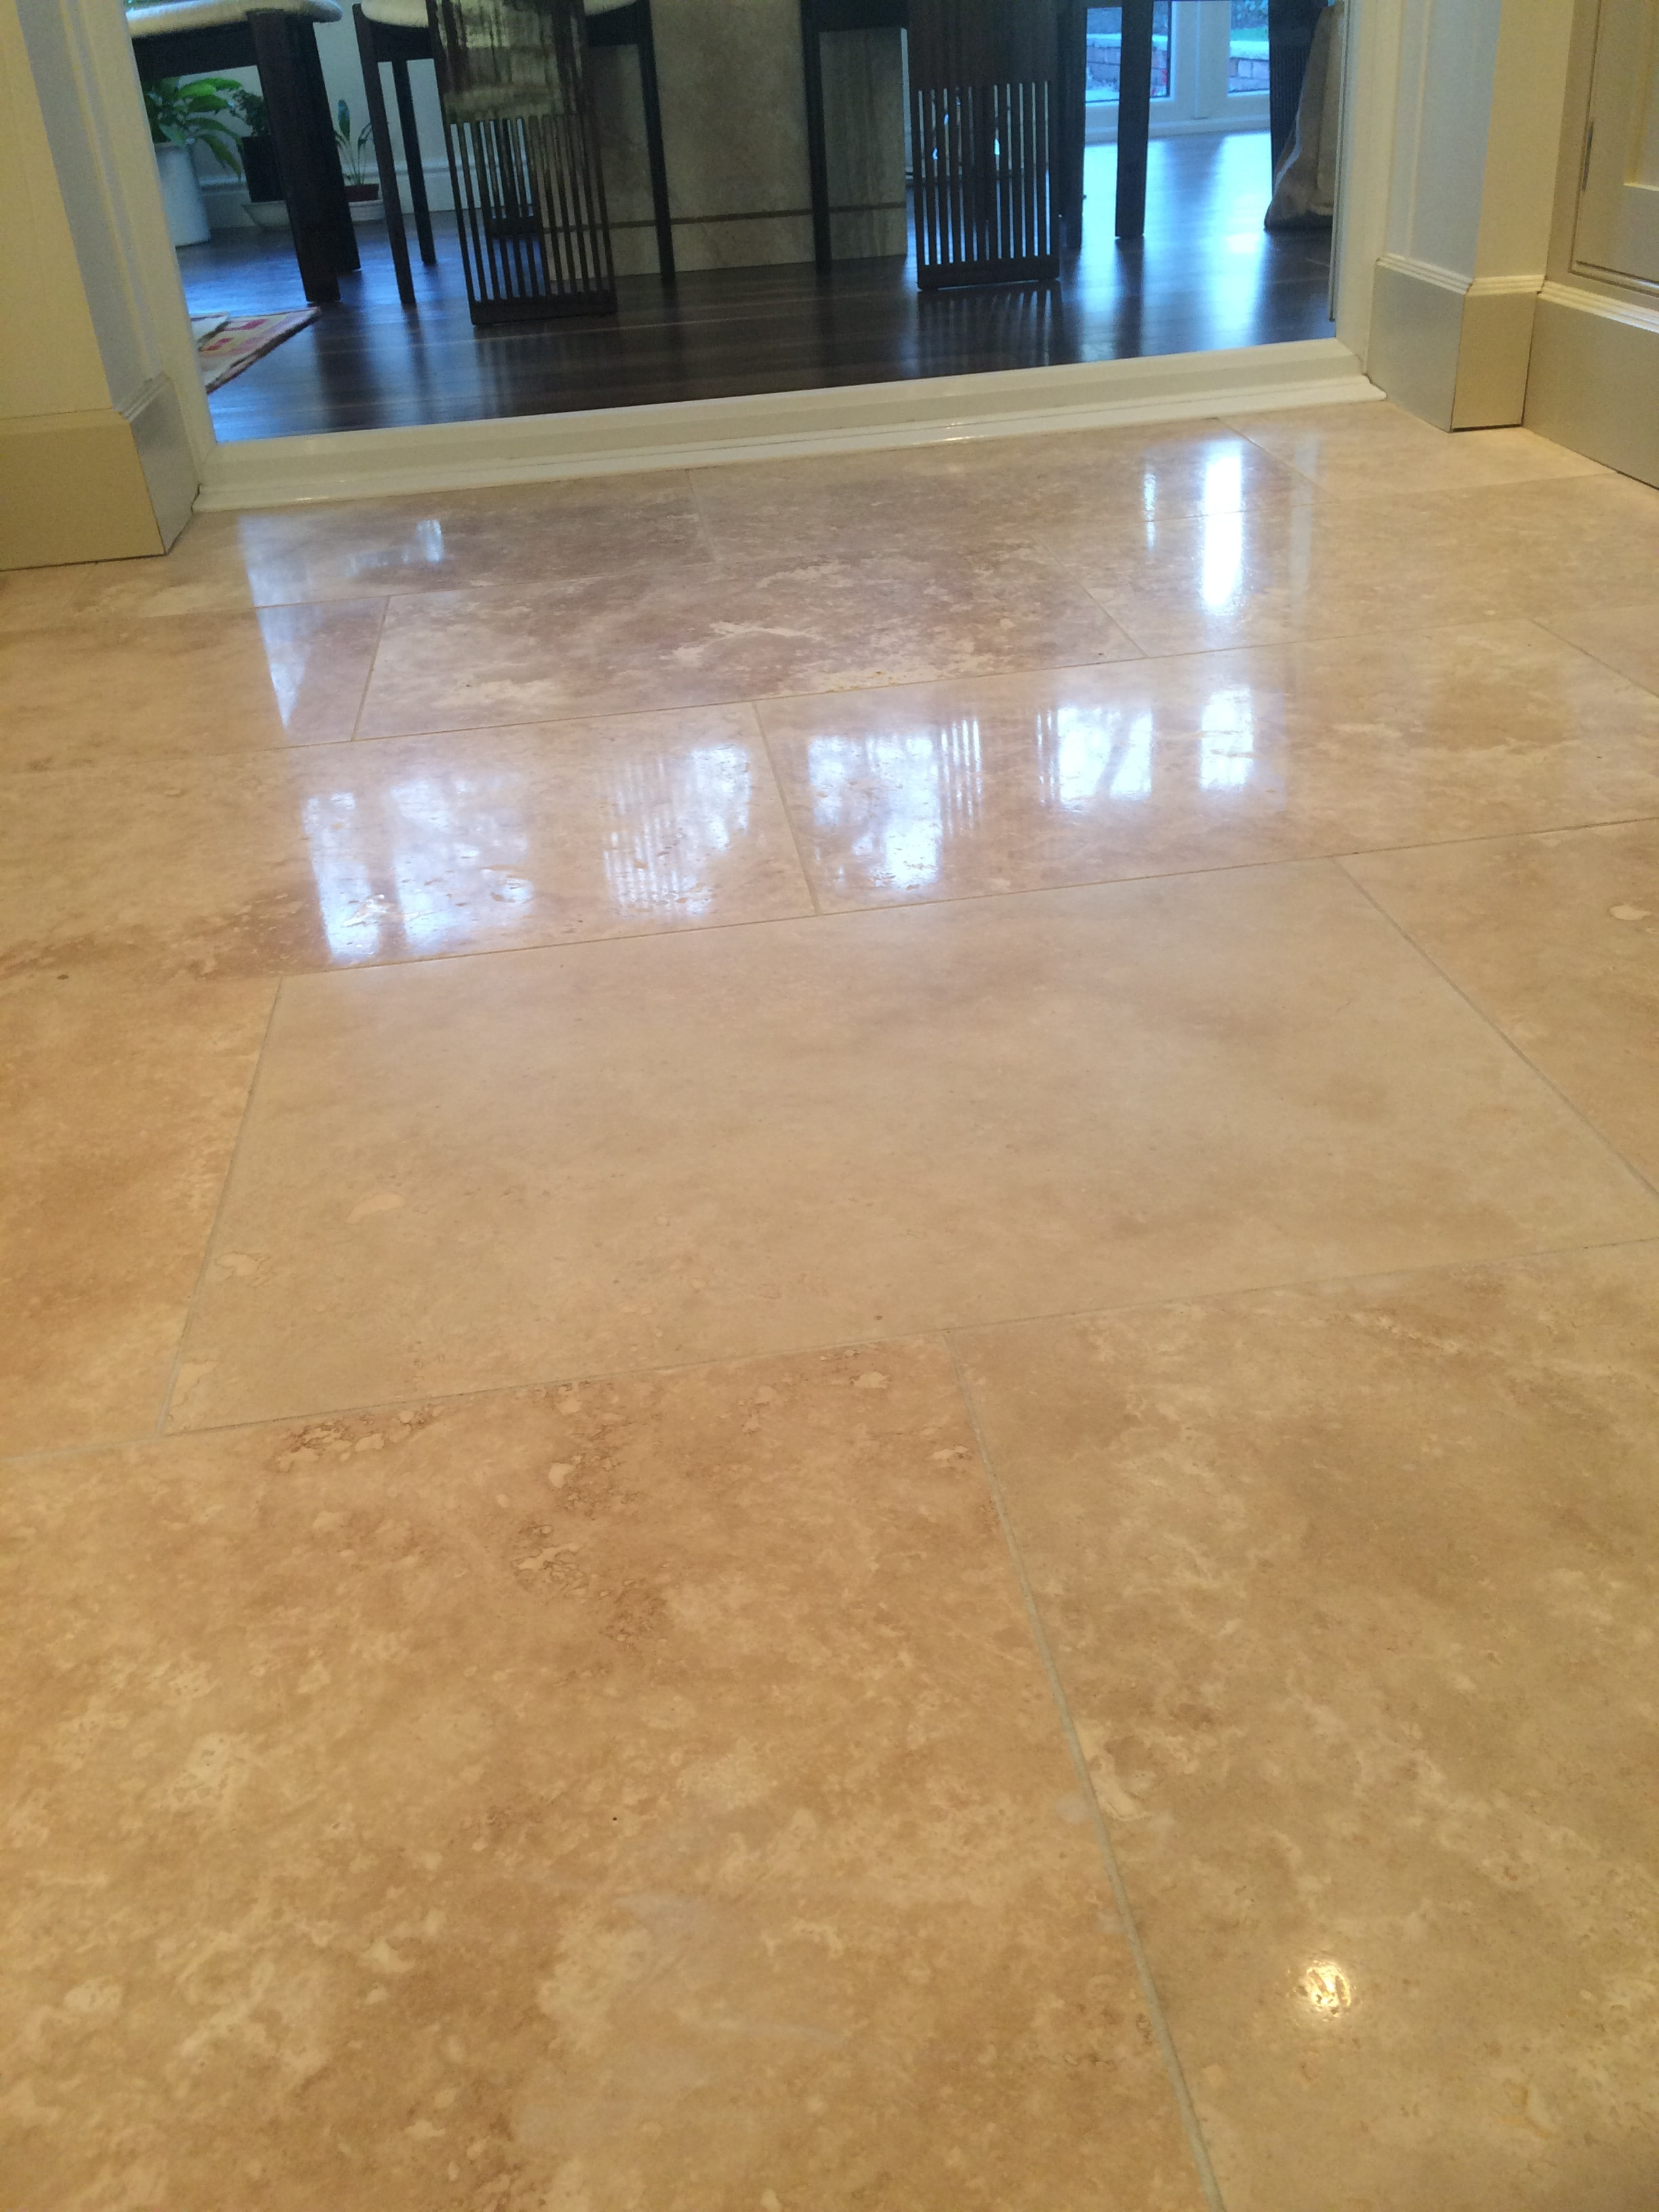 Travertine Tiled Floor After Polishing Blackburn